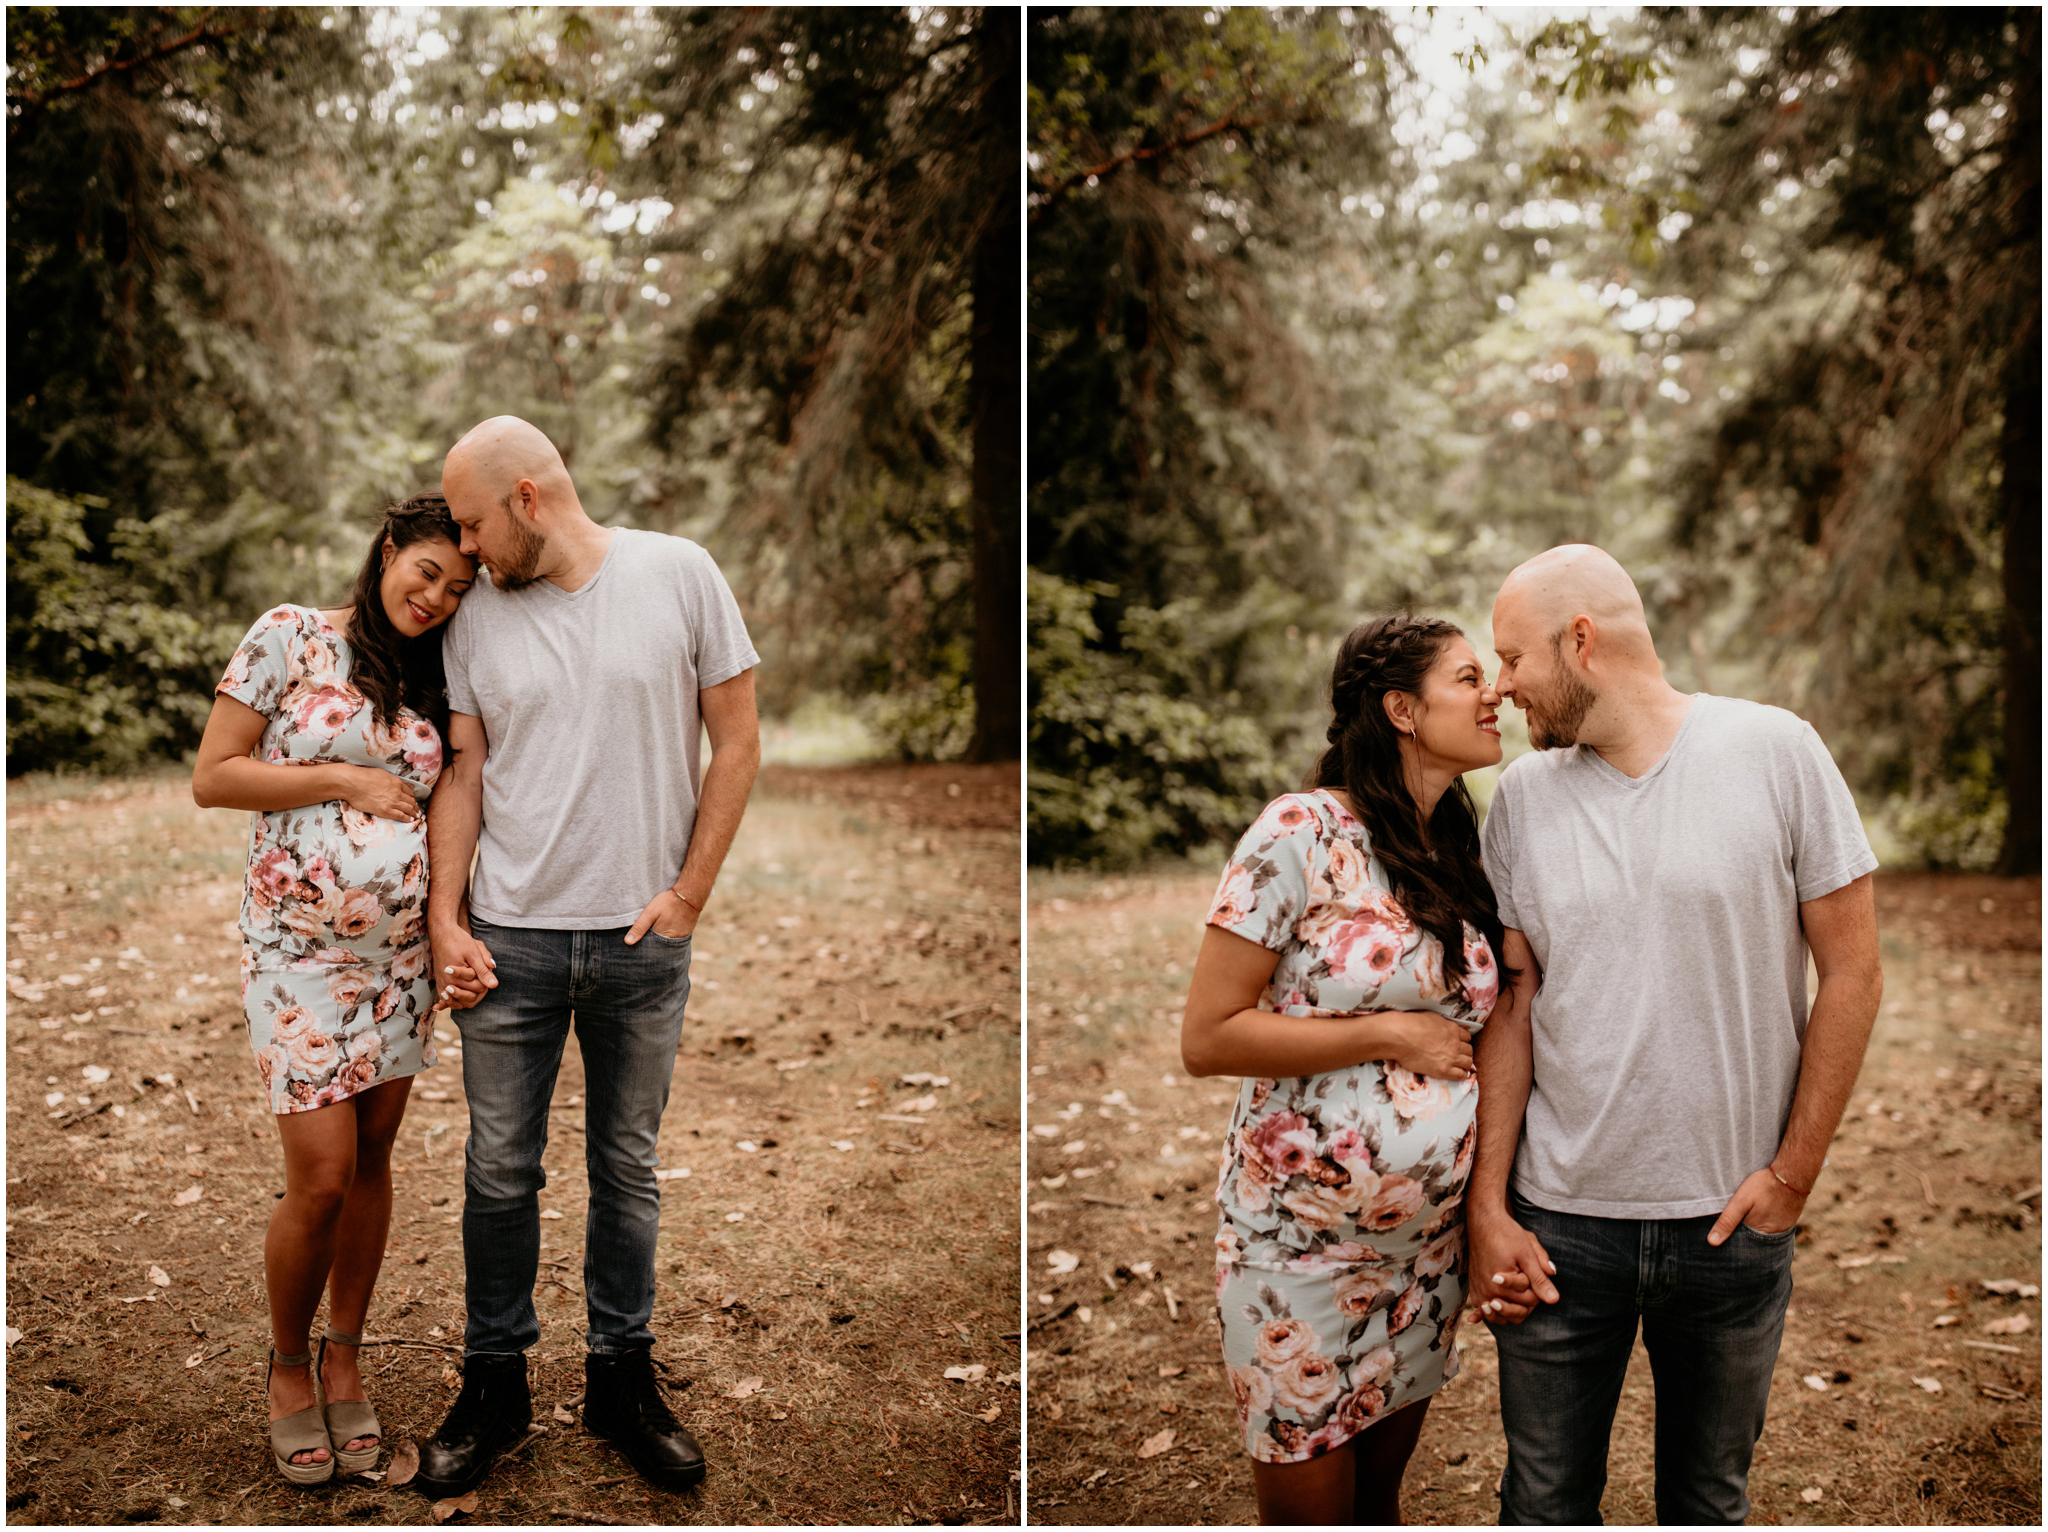 caitlin-jake-maternity-session-seattle-portrait-photographer-027.jpg